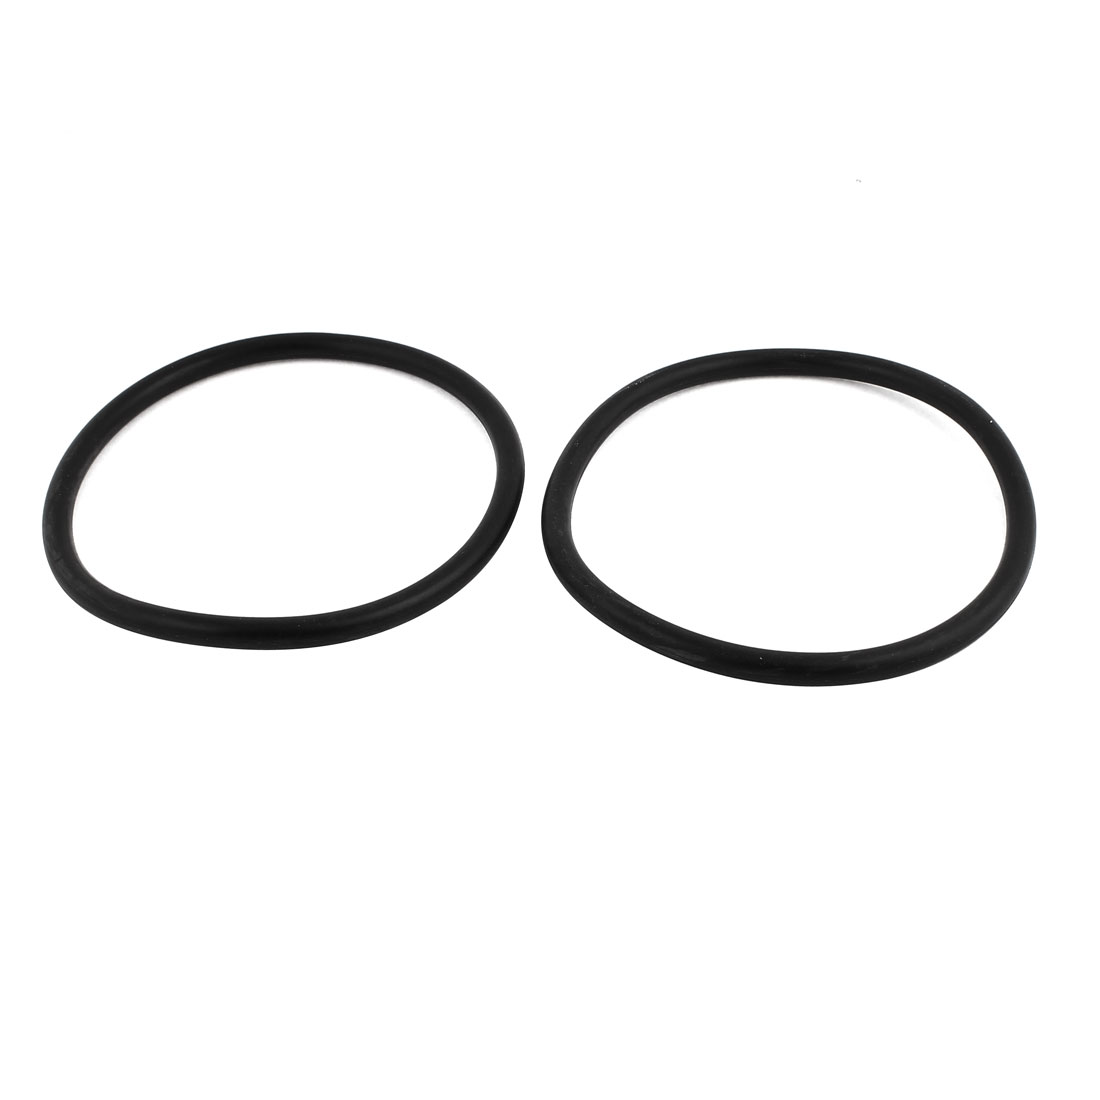 2Pcs Black Universal O-Ring 155mm x 8.6mm BUNA-N Material Oil Seal Washers Grommets